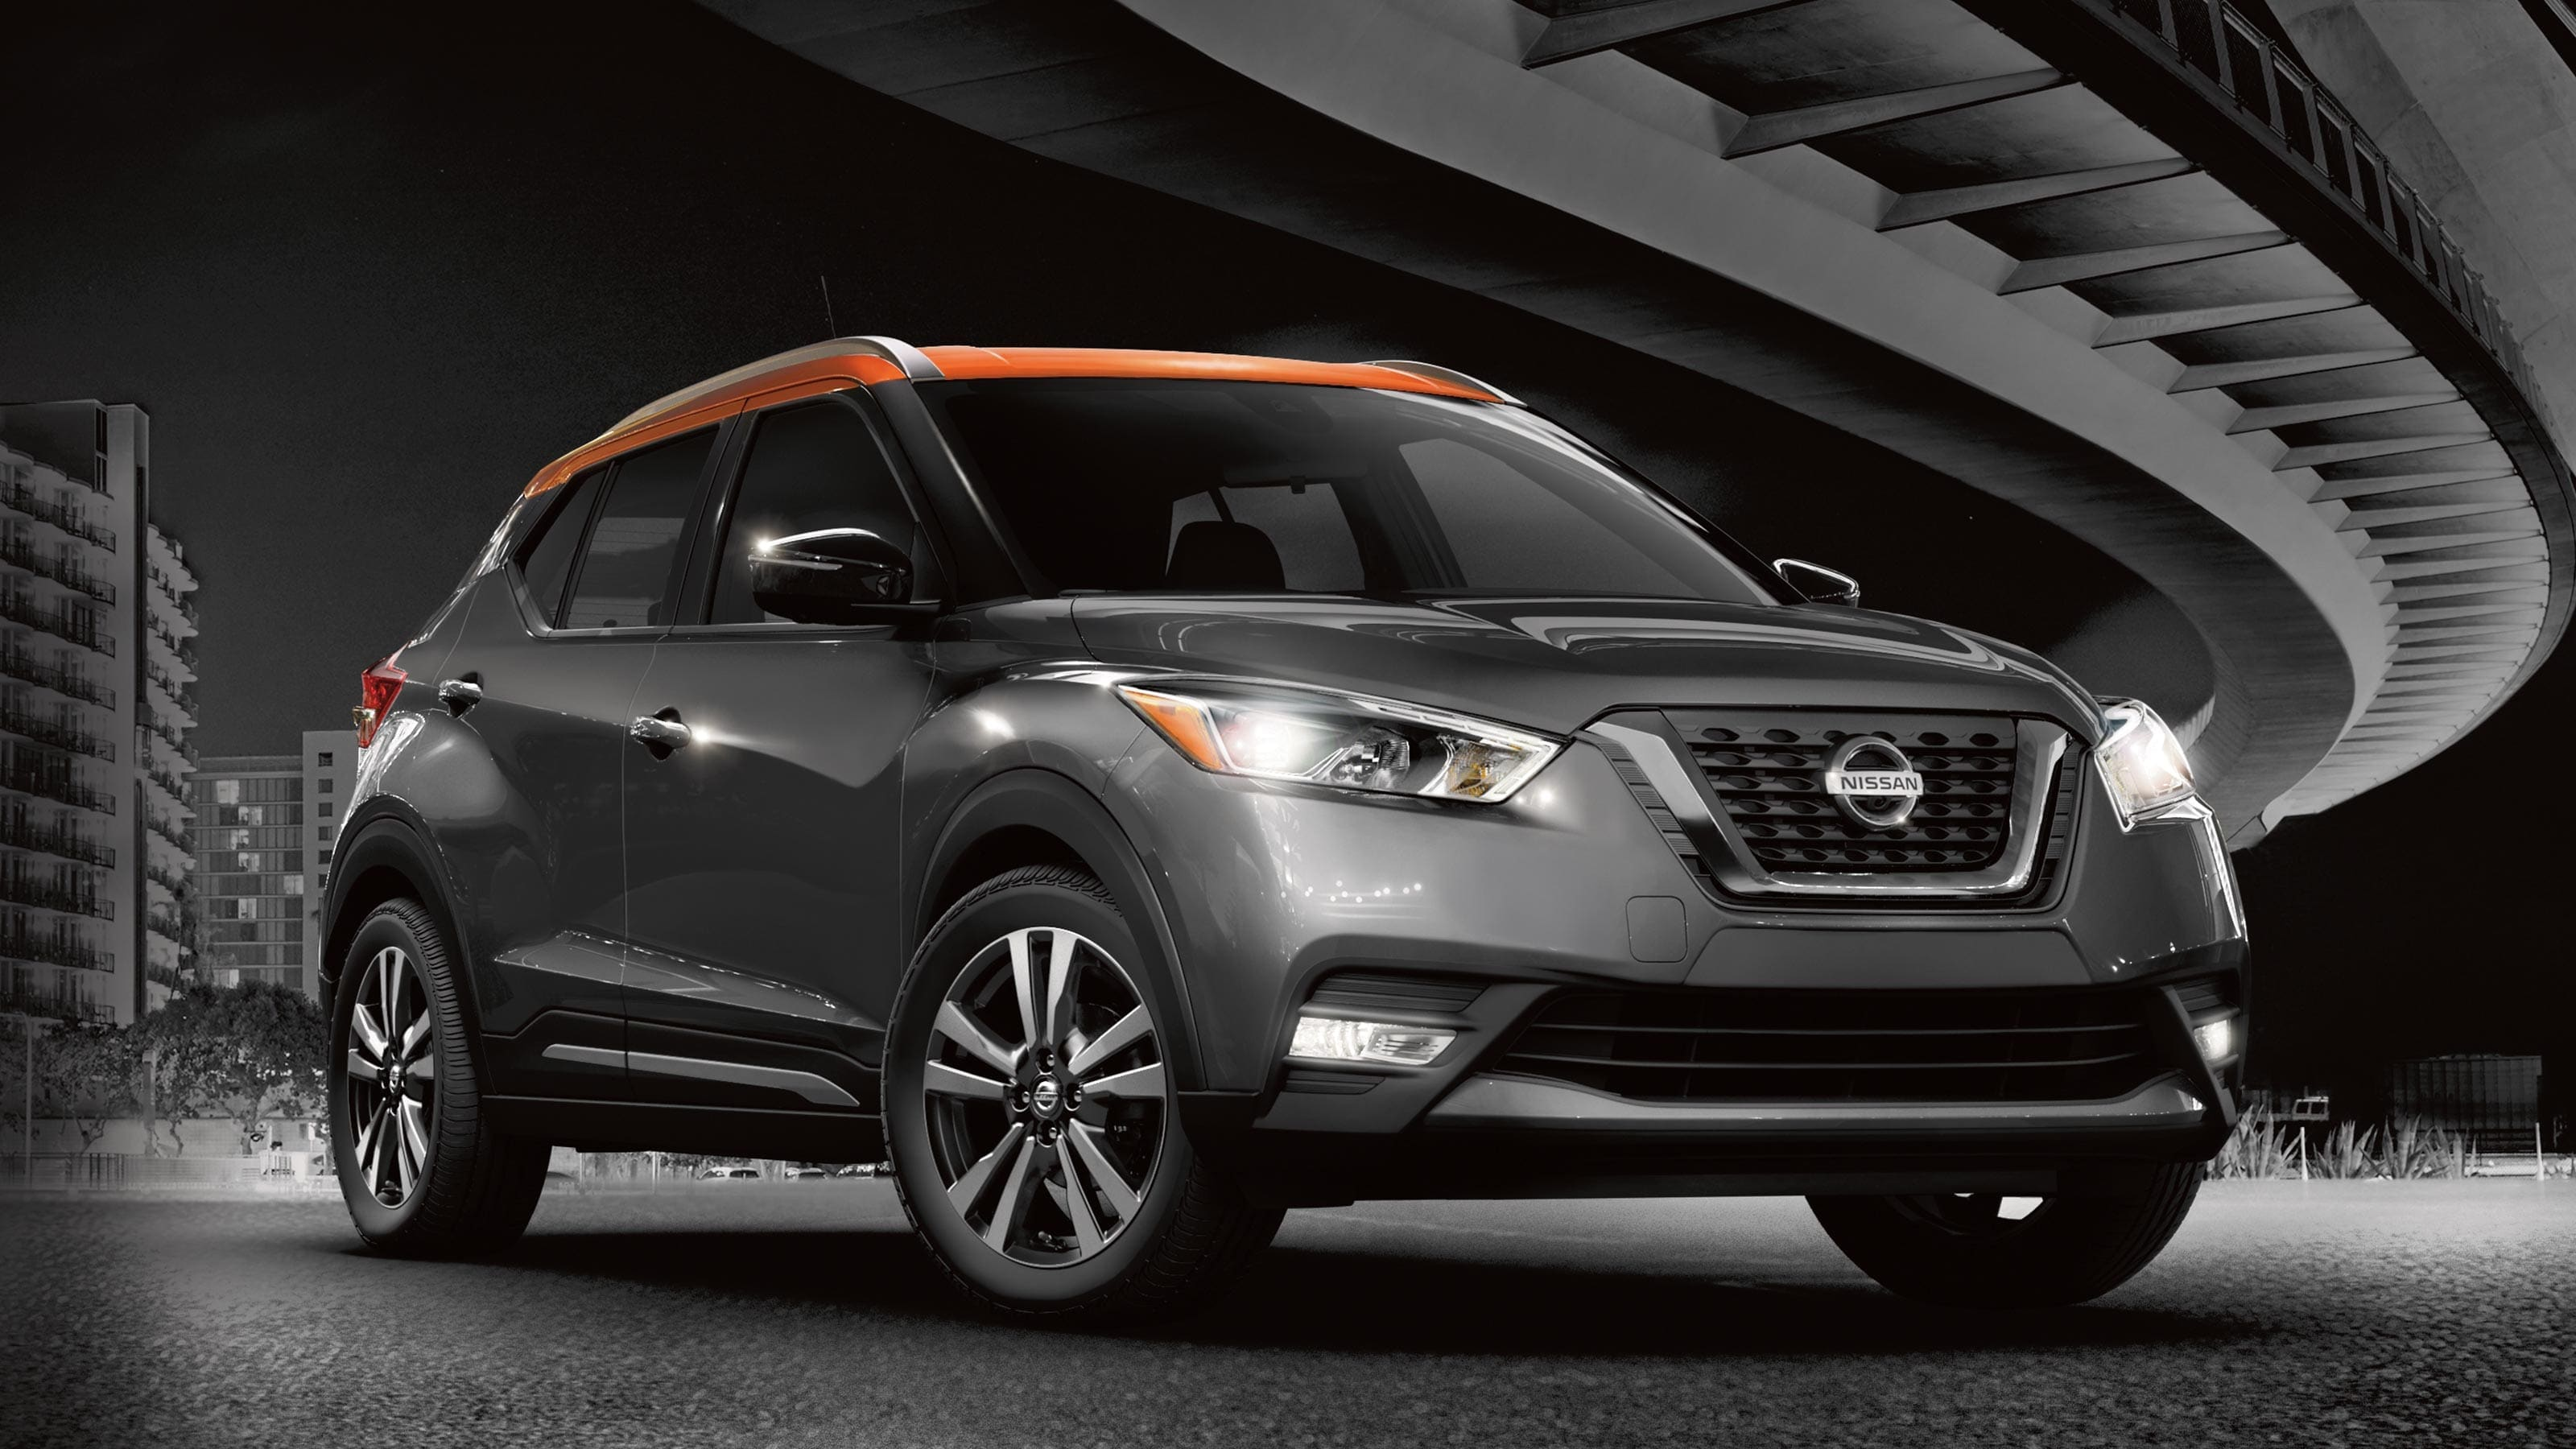 2020 Nissan Kicks in Houston